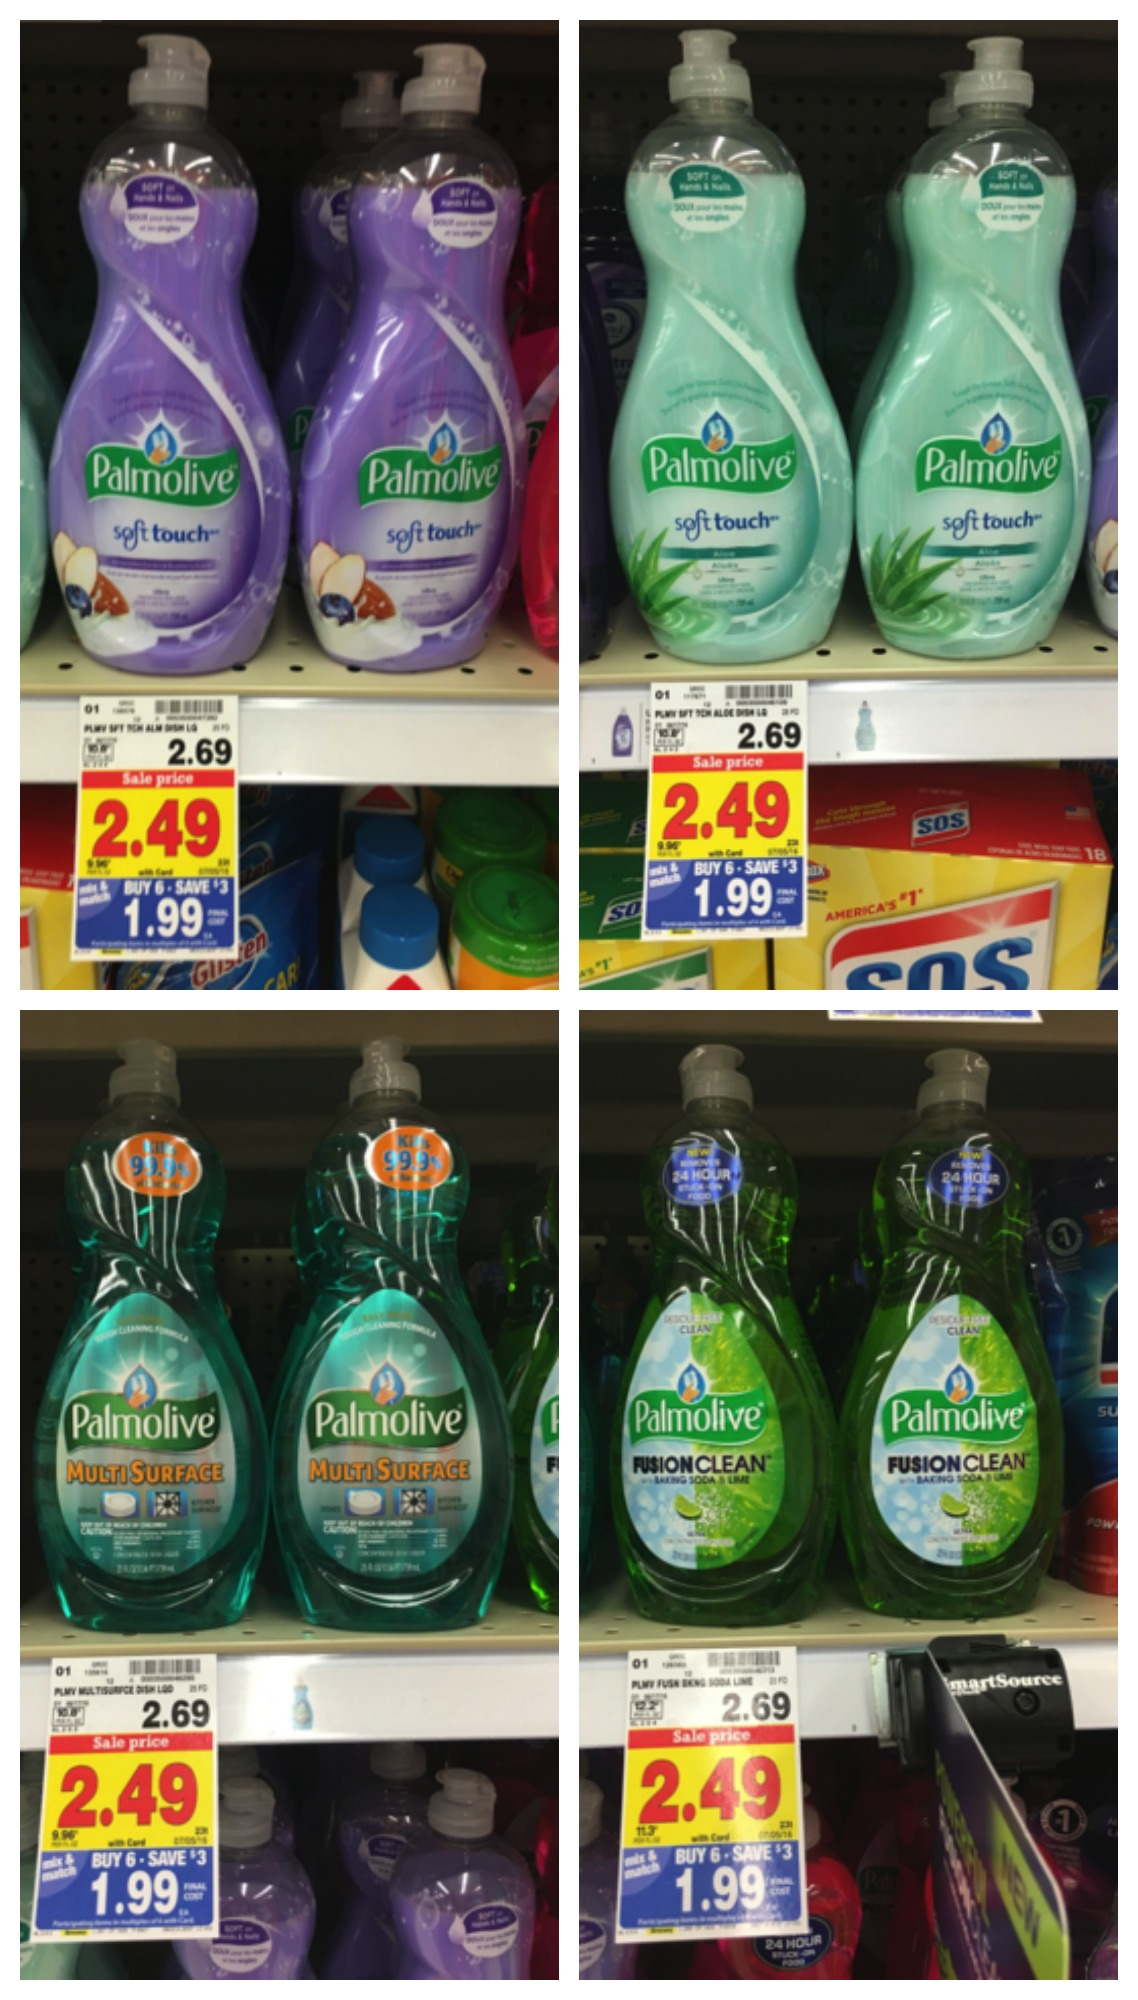 palmolive collage